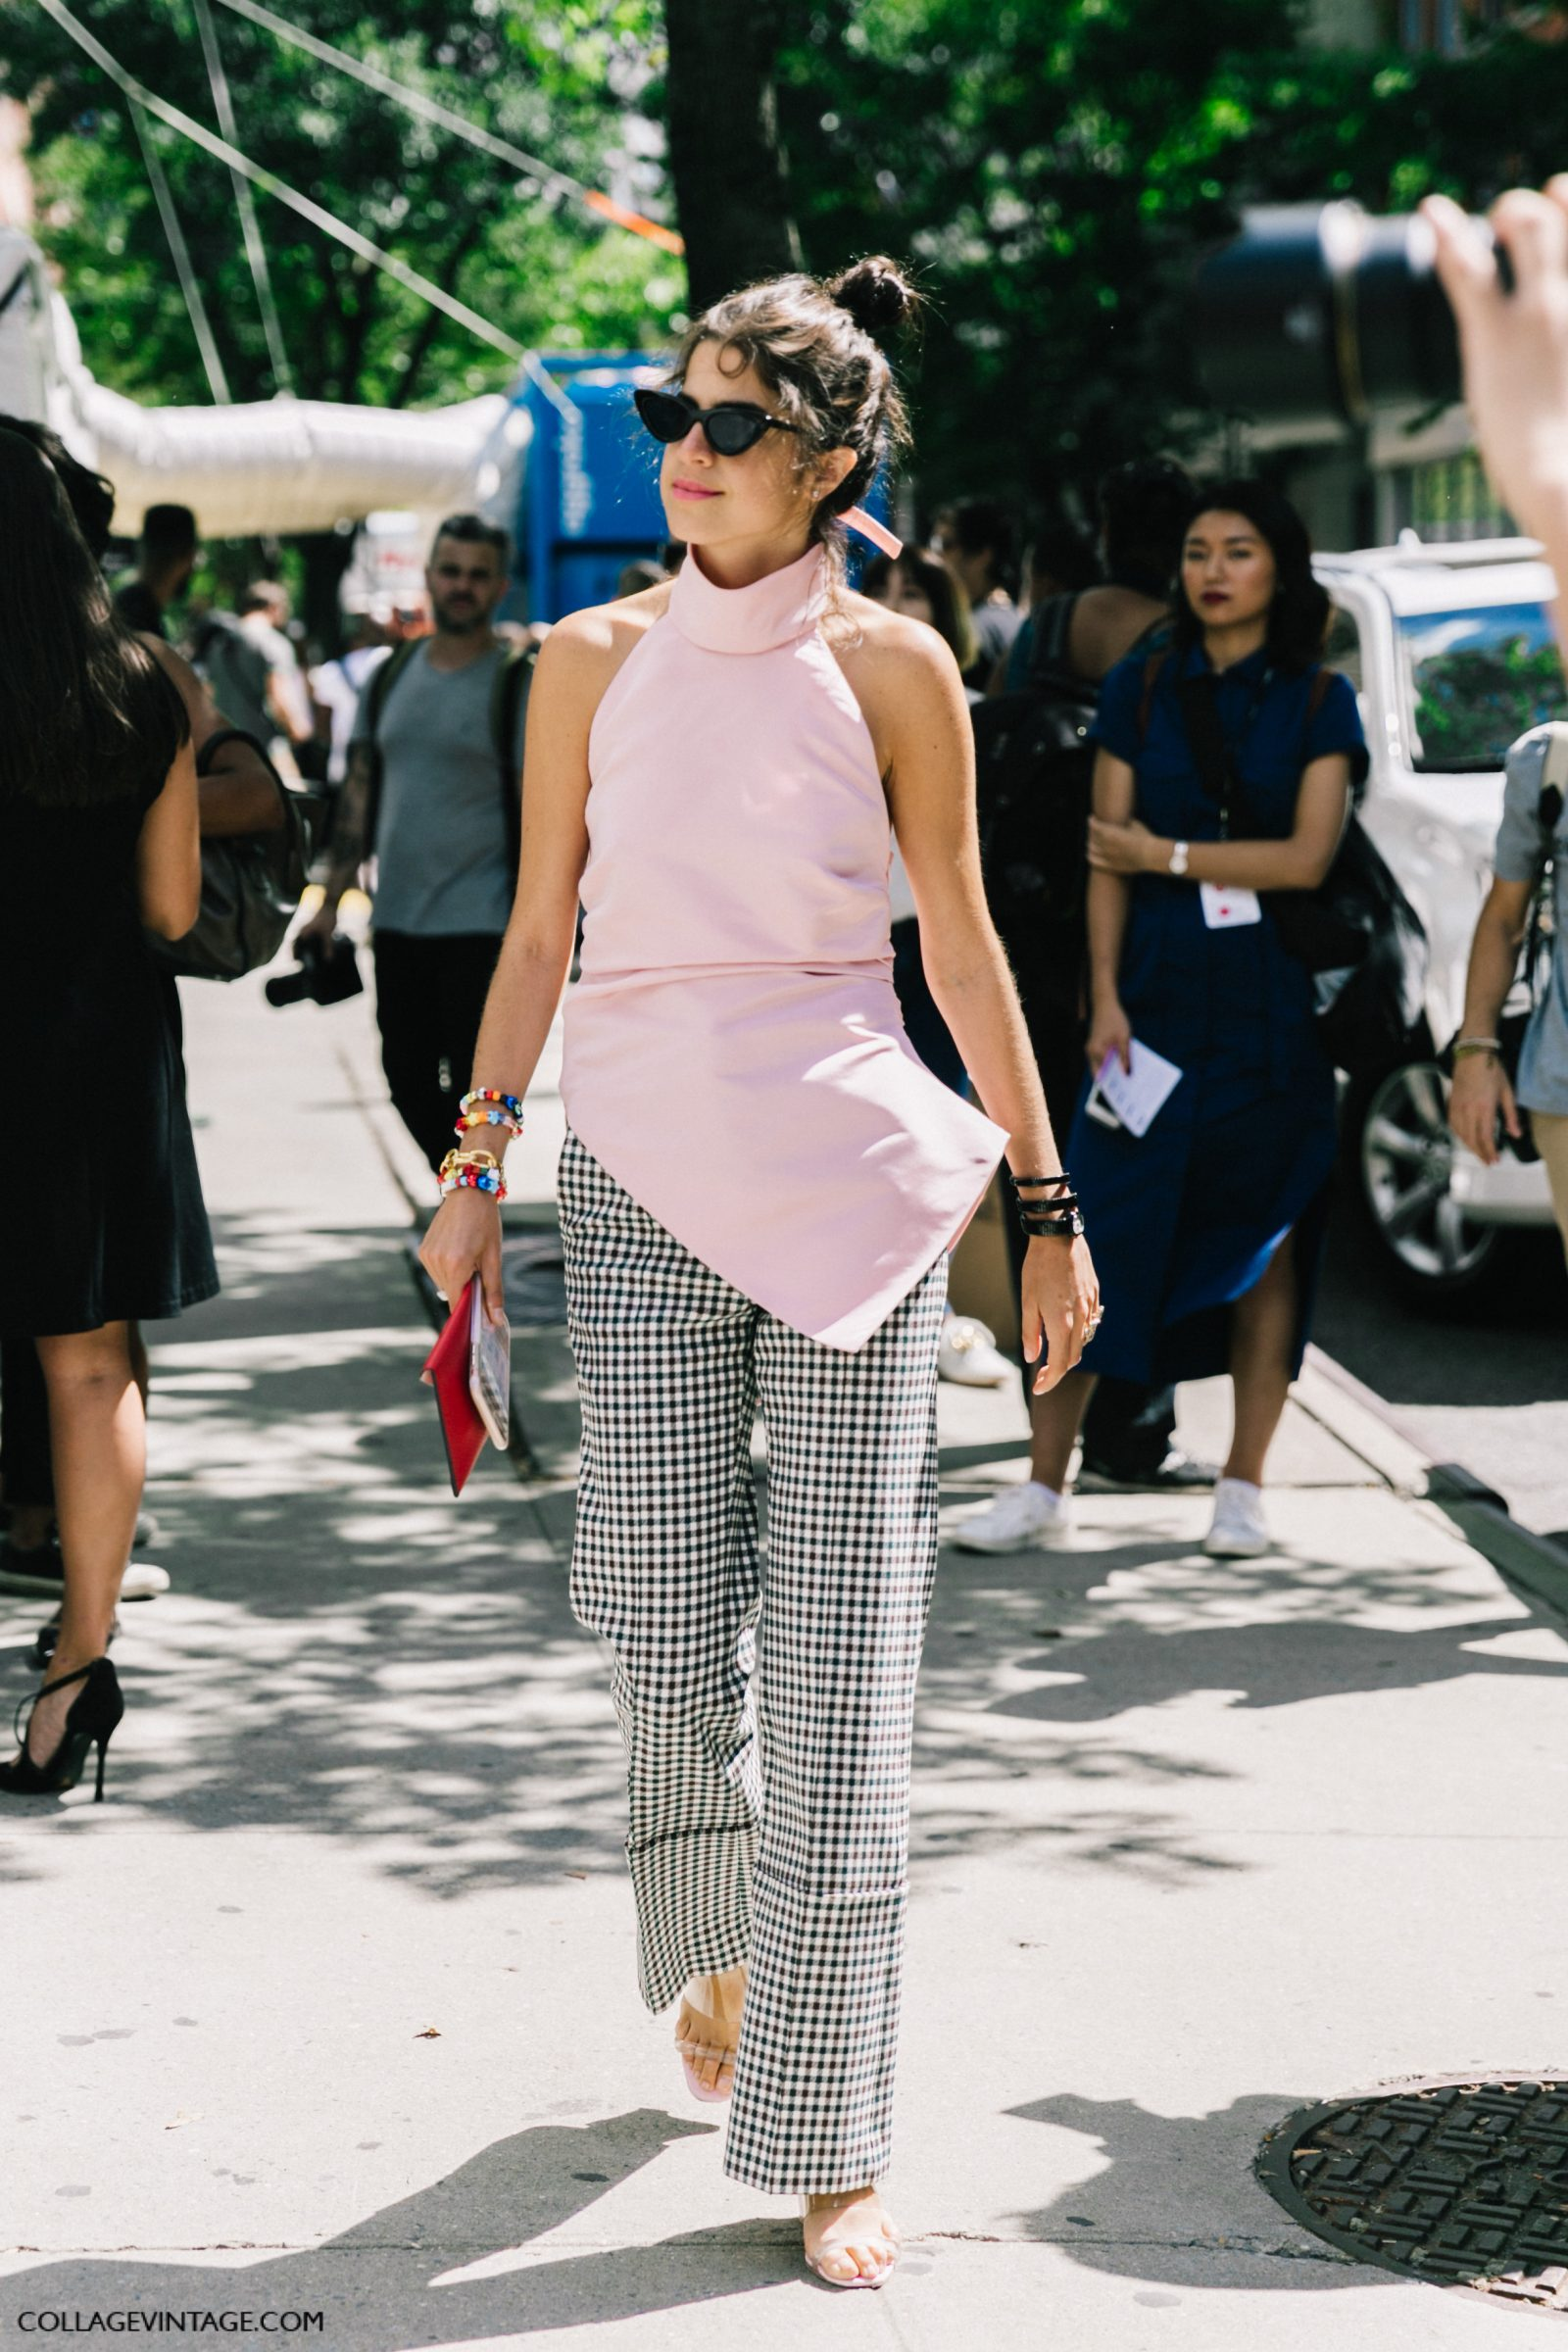 nyfw-new_york_fashion_week_ss17-street_style-outfits-collage_vintage-vintage-phillip_lim-the-row-proenza_schouler-rossie_aussolin-193